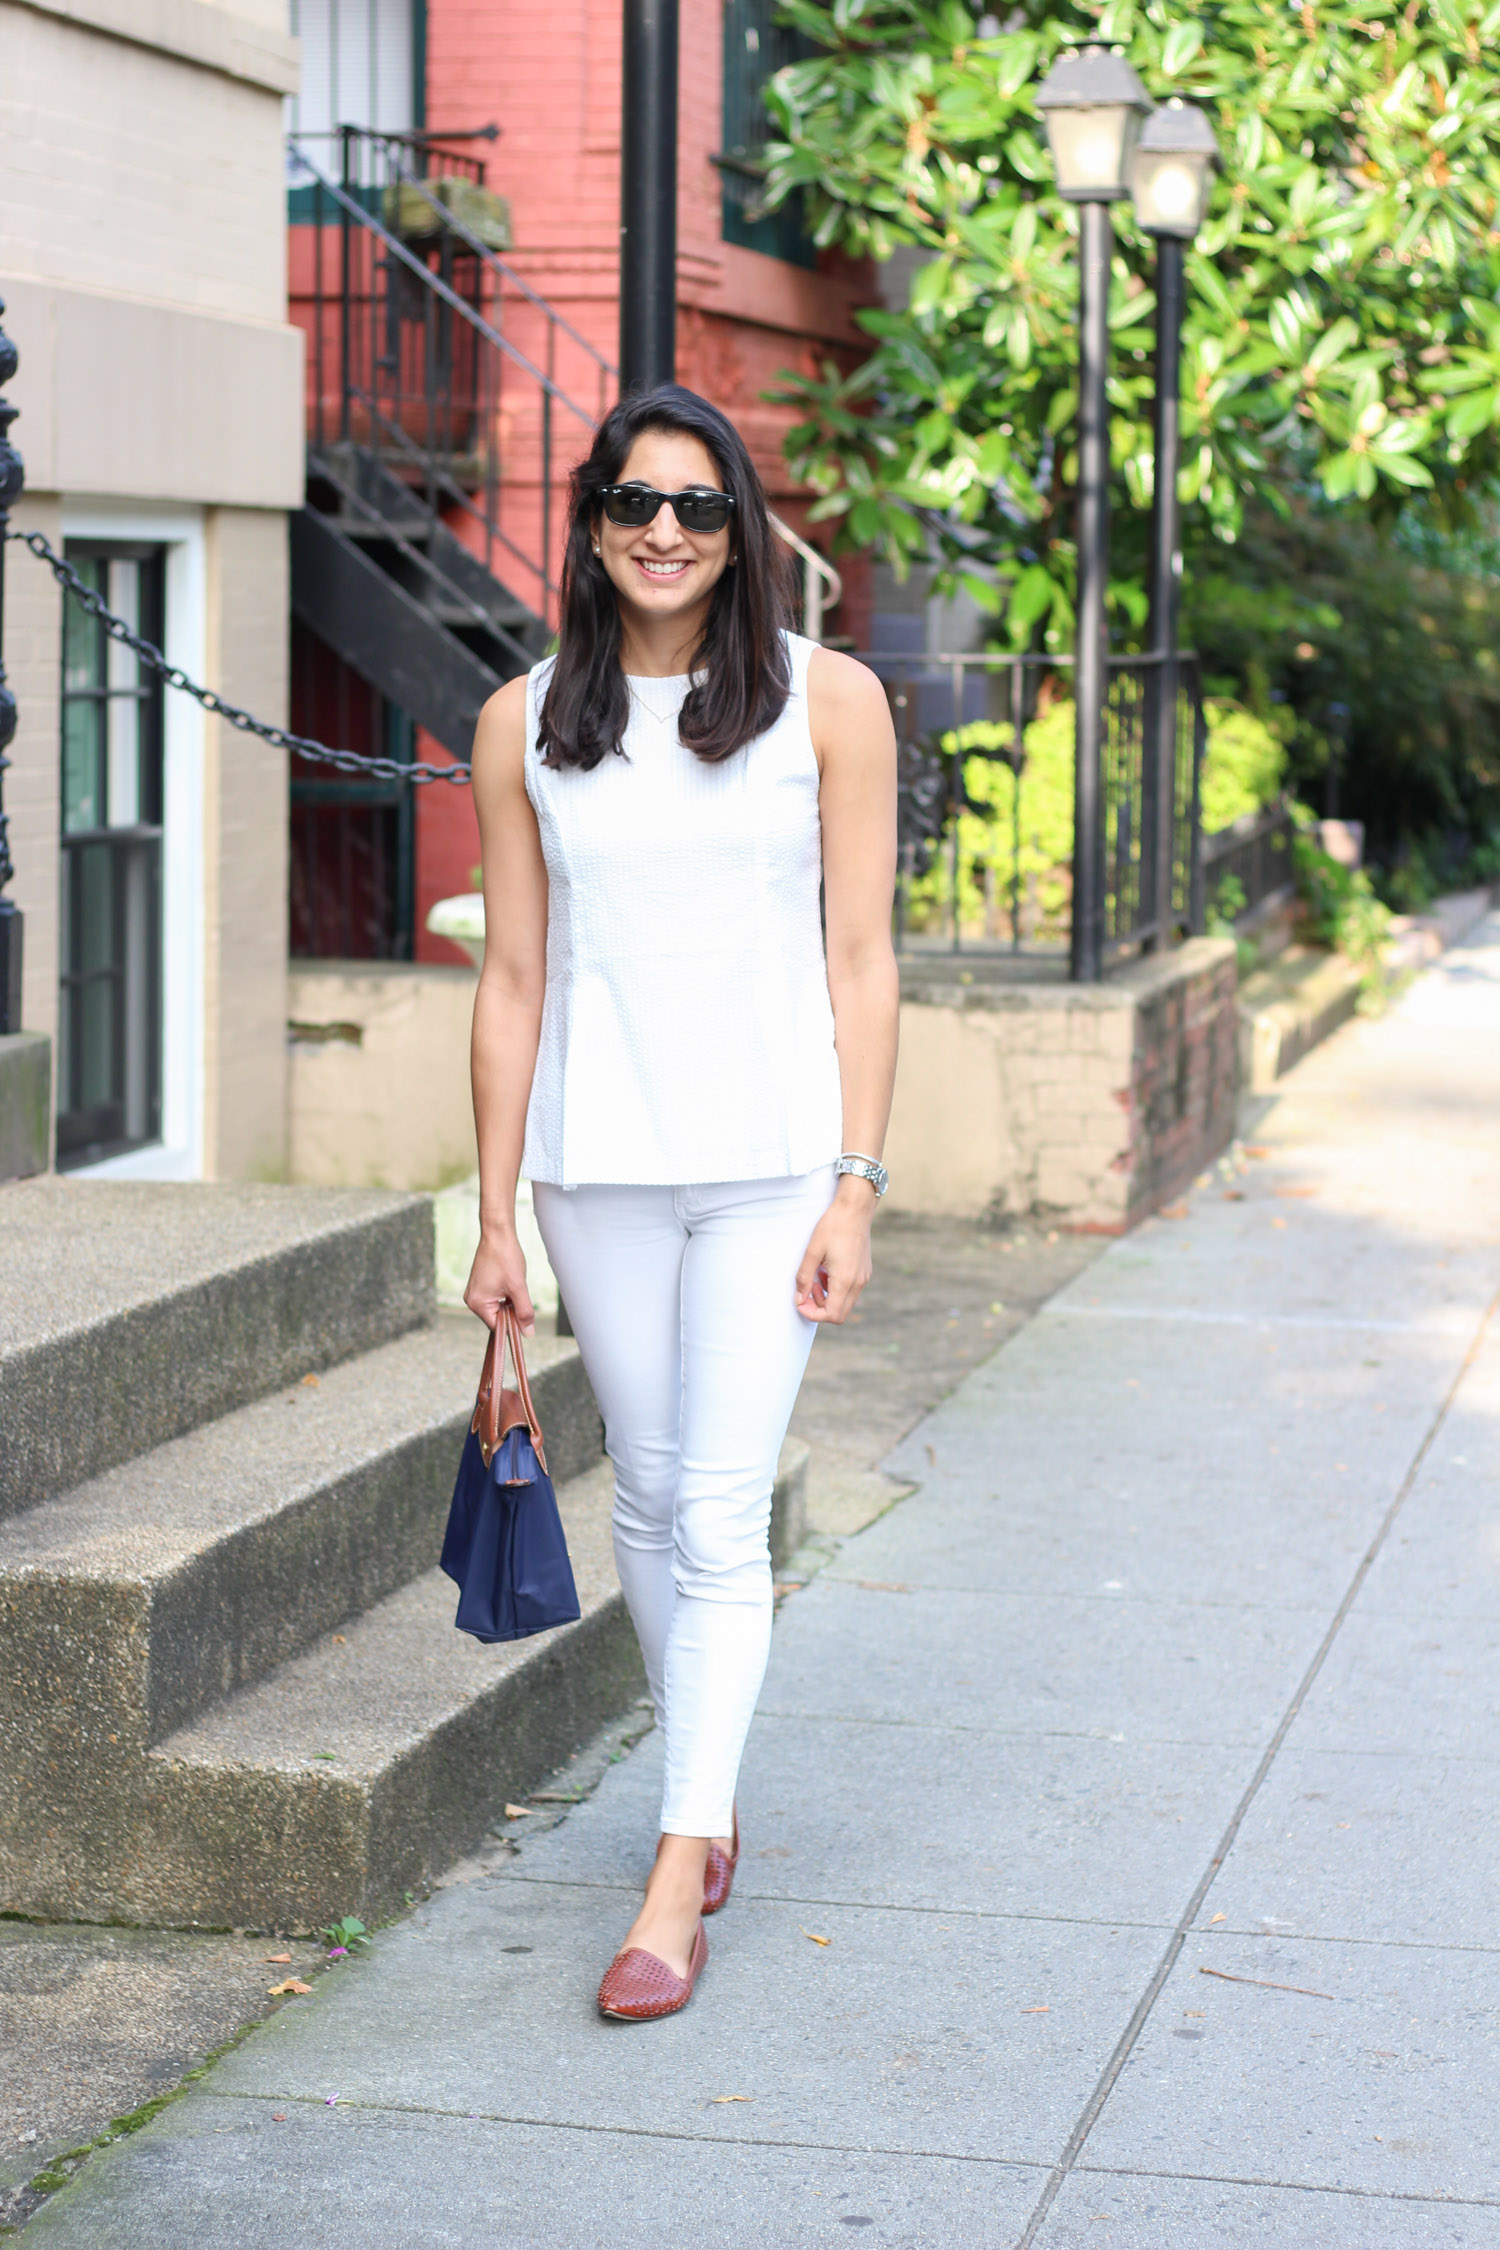 All white summer outfit | Duffield Lane white seersucker top featured by popular DC fashion blogger, Monica Dutia